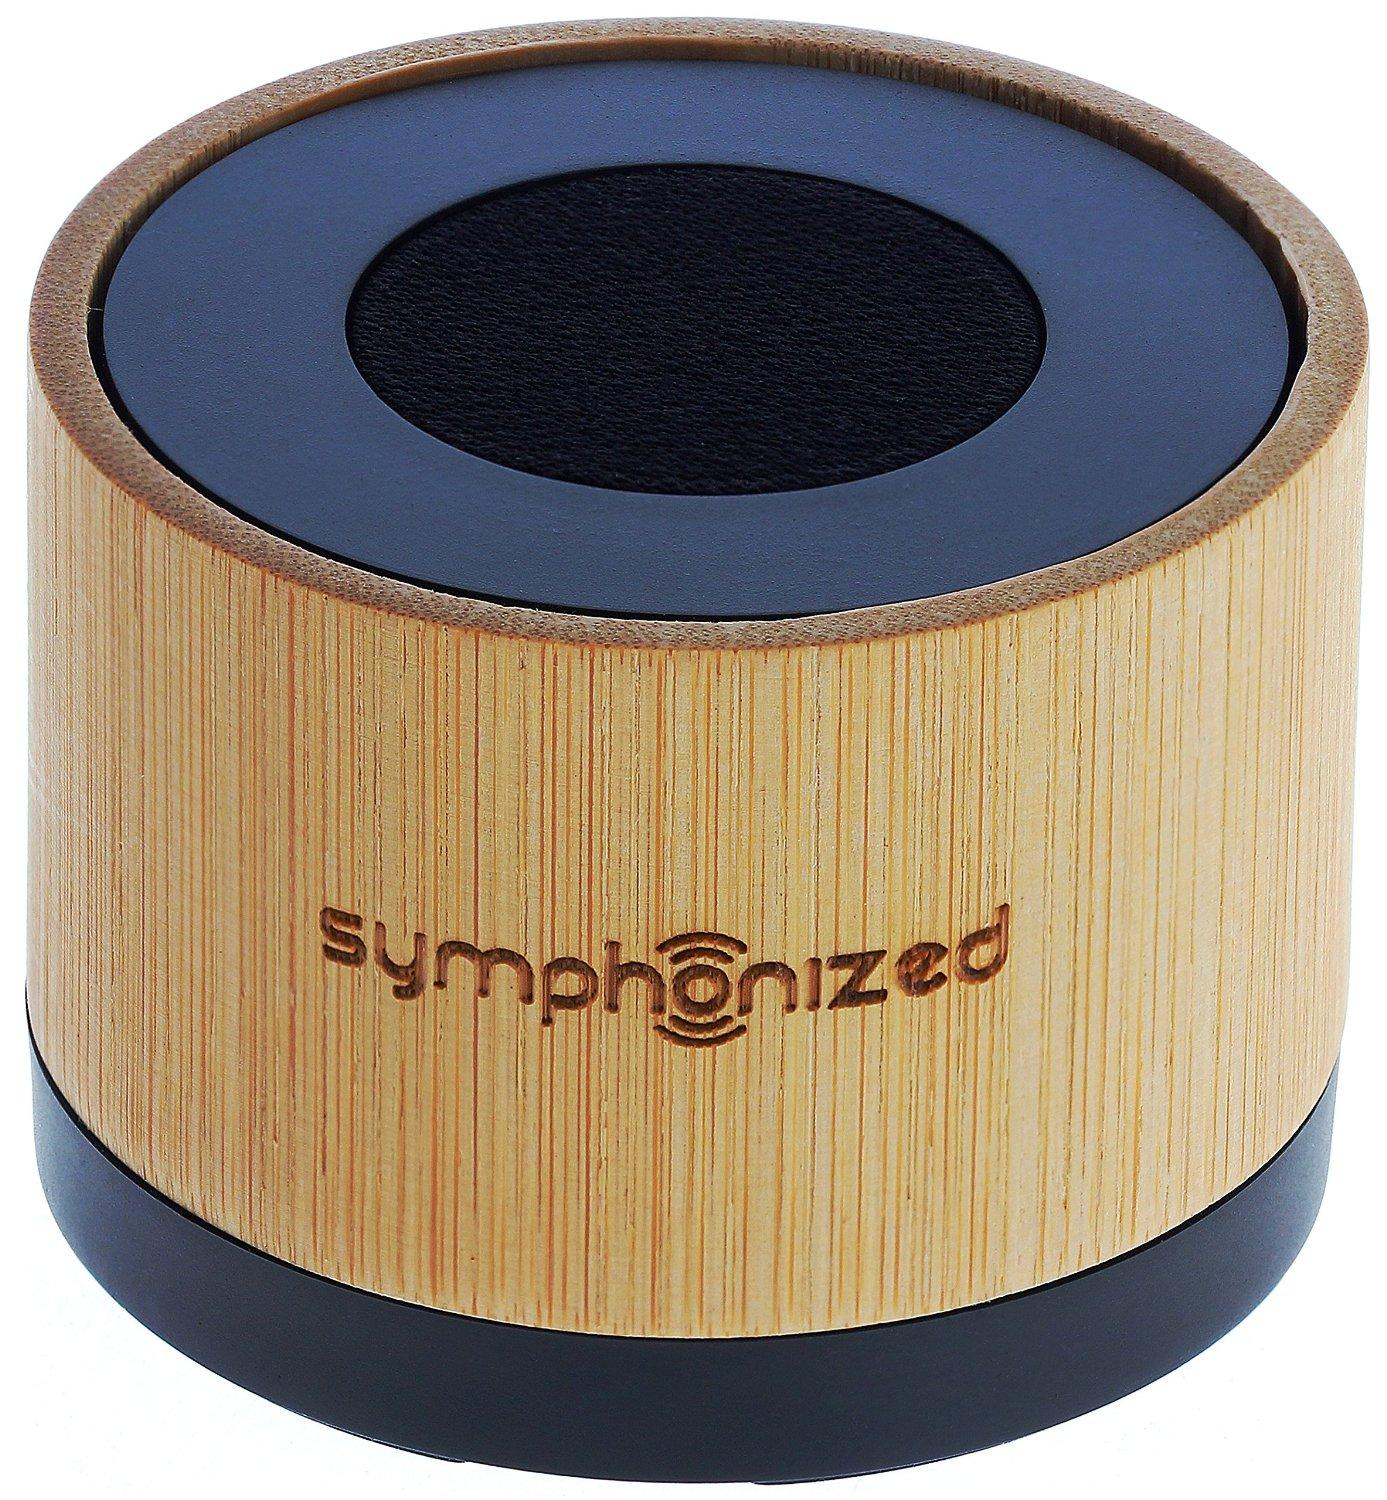 $26 Symphonized NXT Premium Genuine Wood Bluetooth Portable Speaker